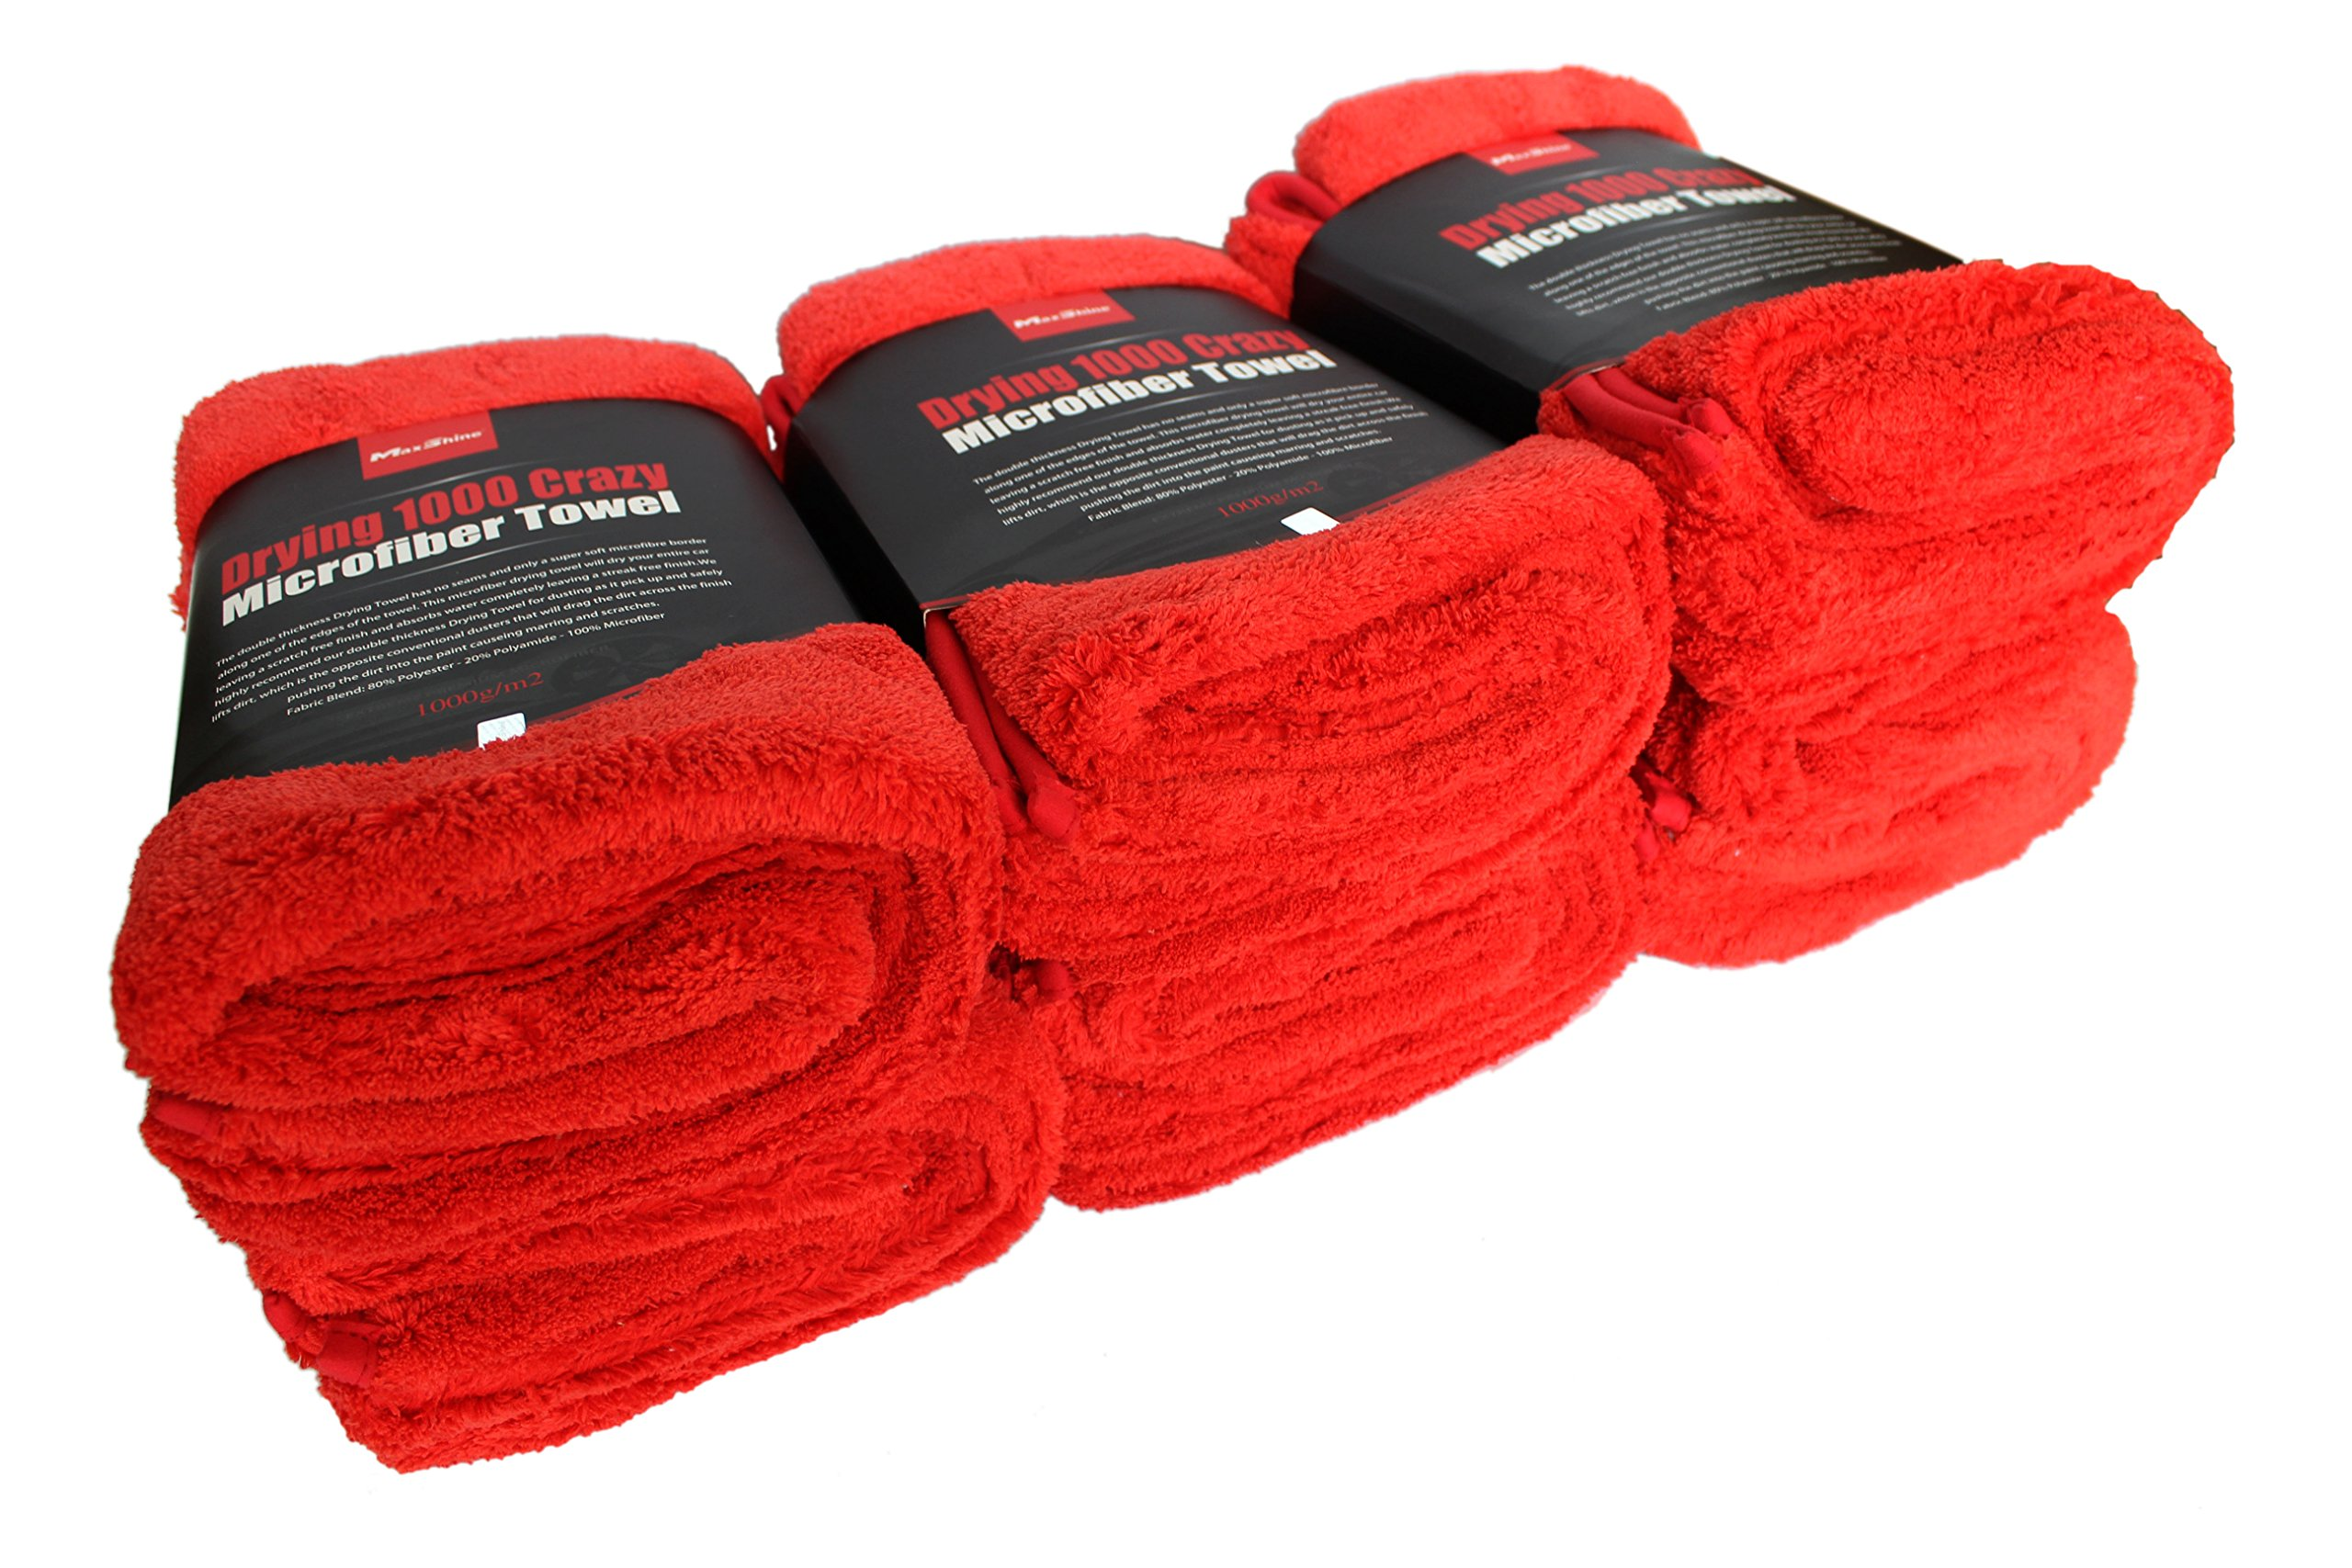 Maxshine 1000GSM Crazy Microfiber Drying Towel Series, Red, 50x70cm (Pack of 6)